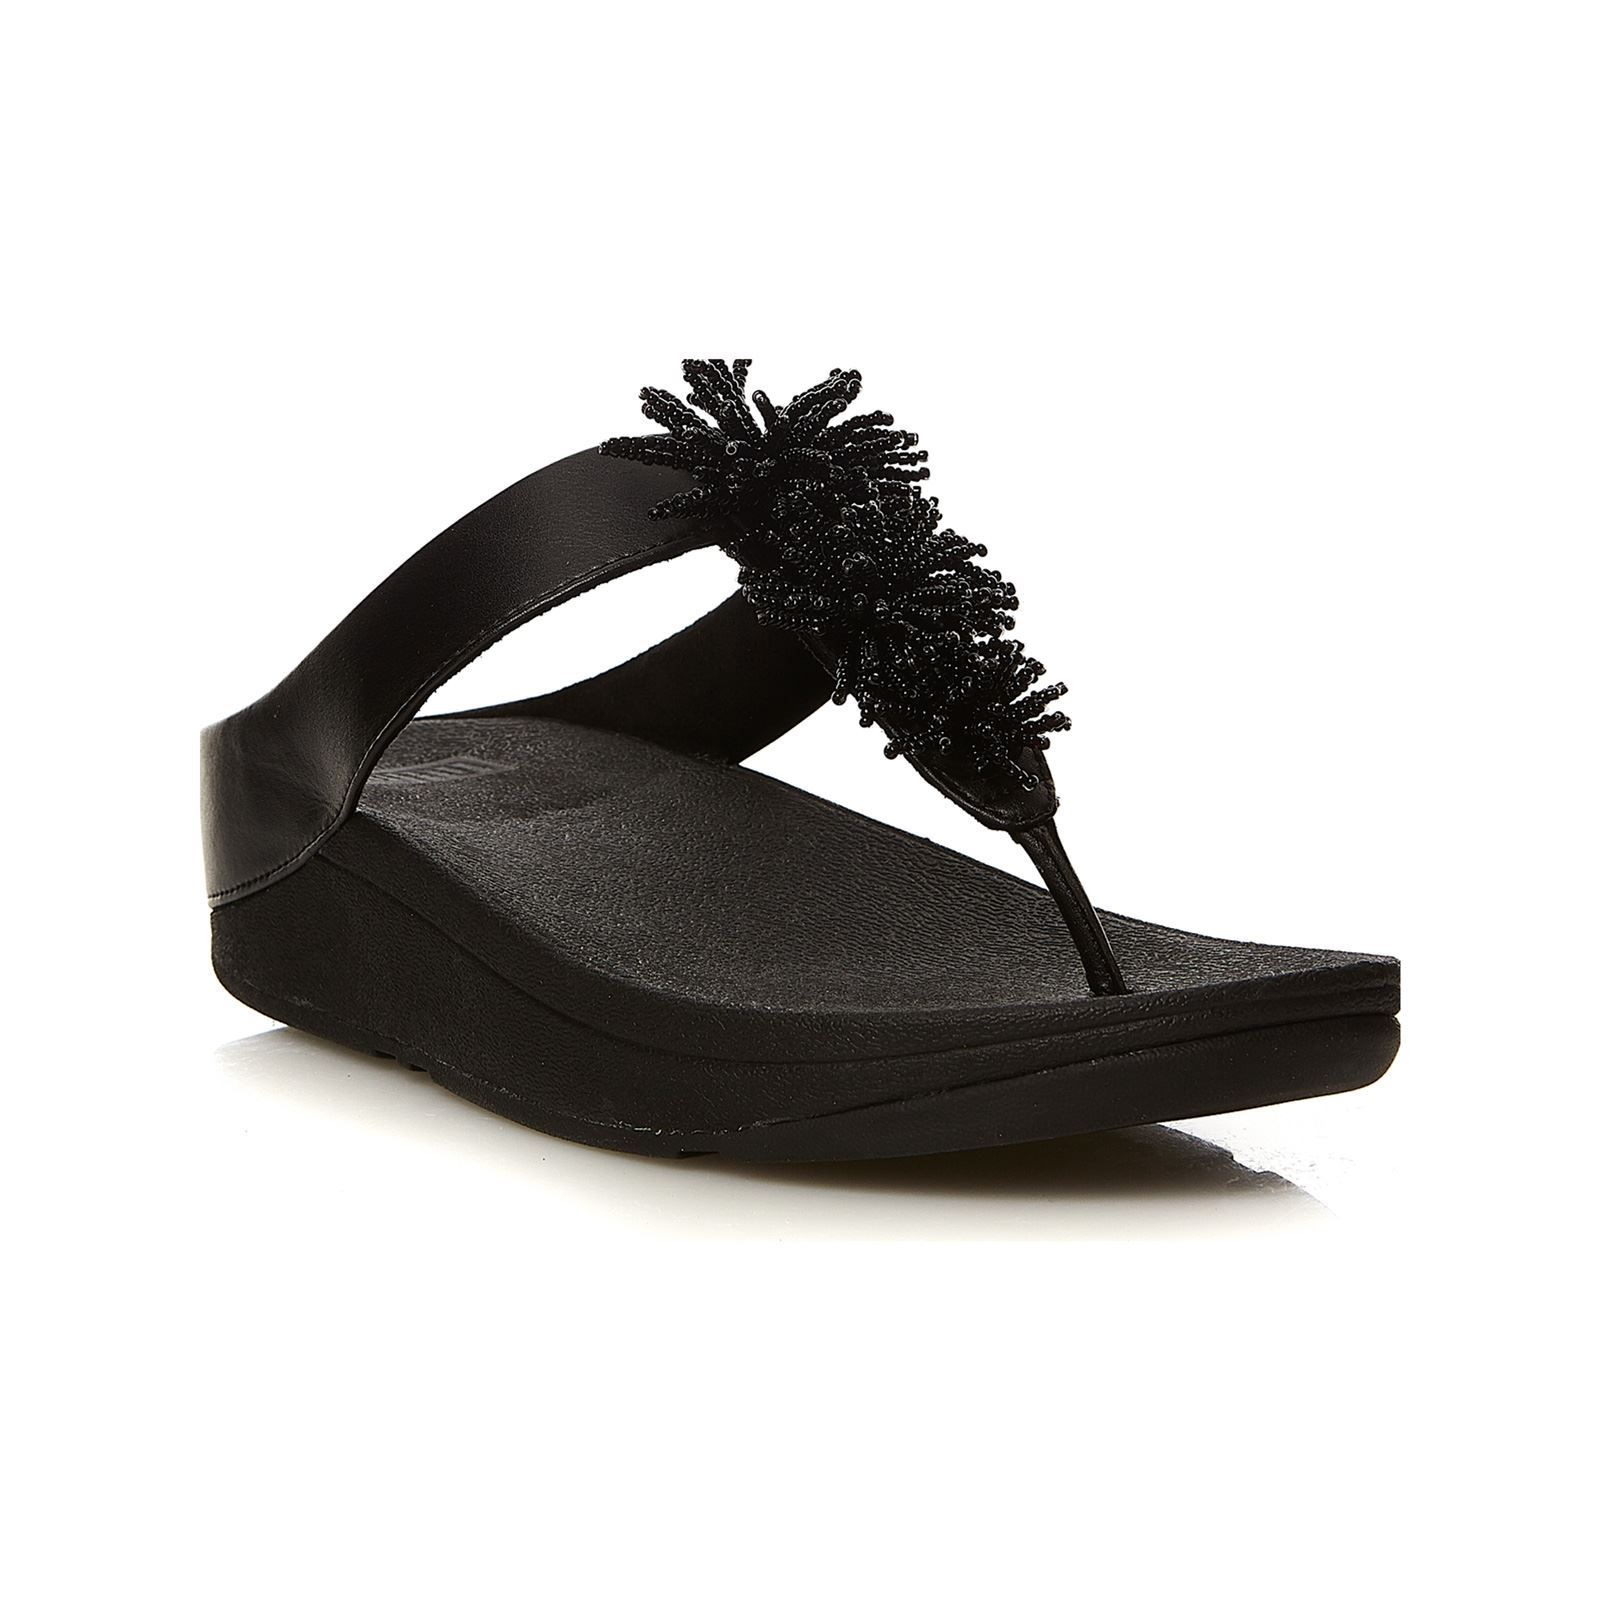 Bead Fino Fitflop Tongs Pompom NoirBrandalley qcALR354jS